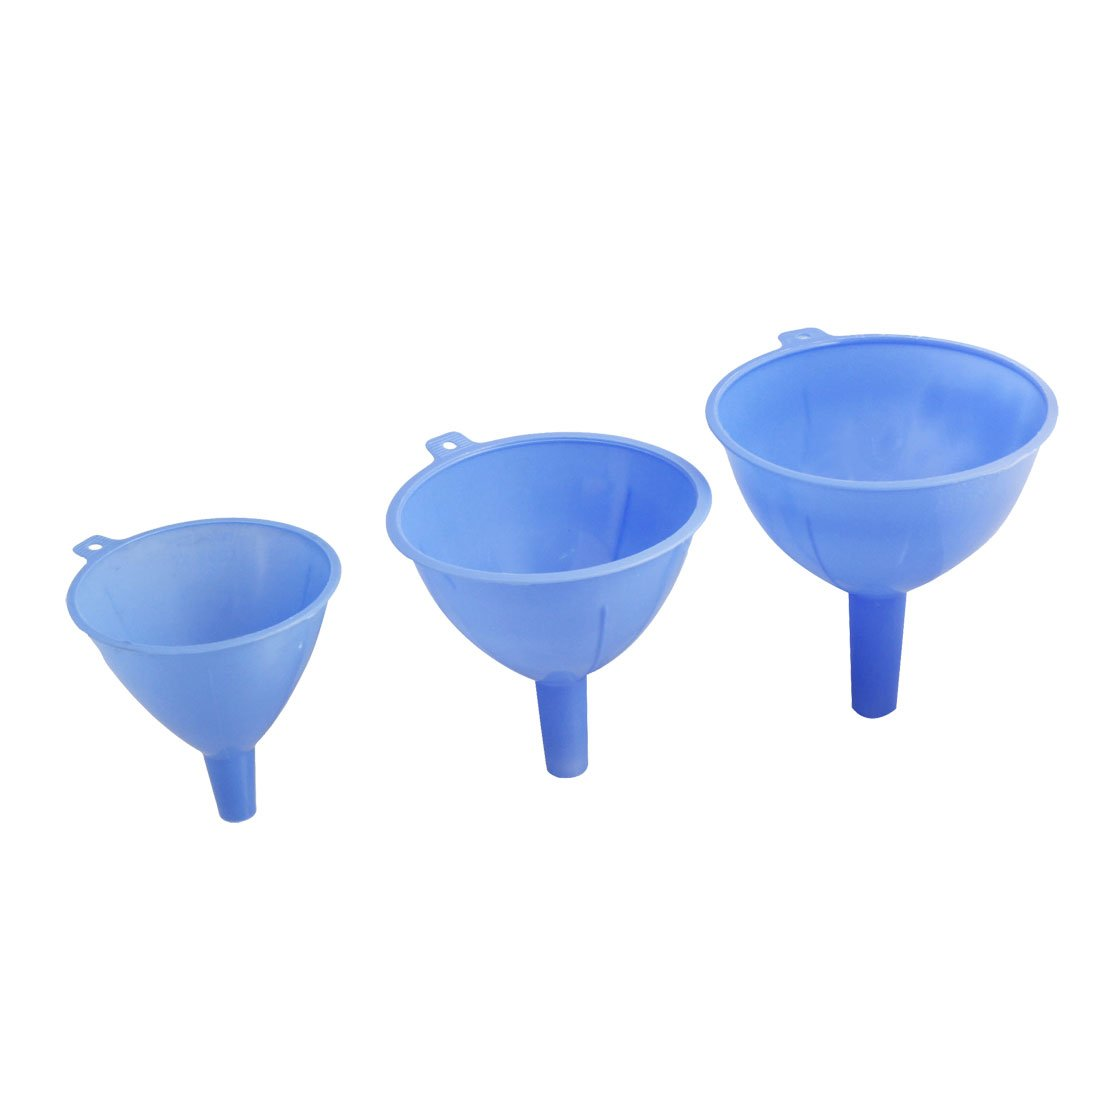 sourcingmap® Blue Plastic 3 Sizes 123mm 113mm 93mm Dia Filter Funnels a12032600ux0753